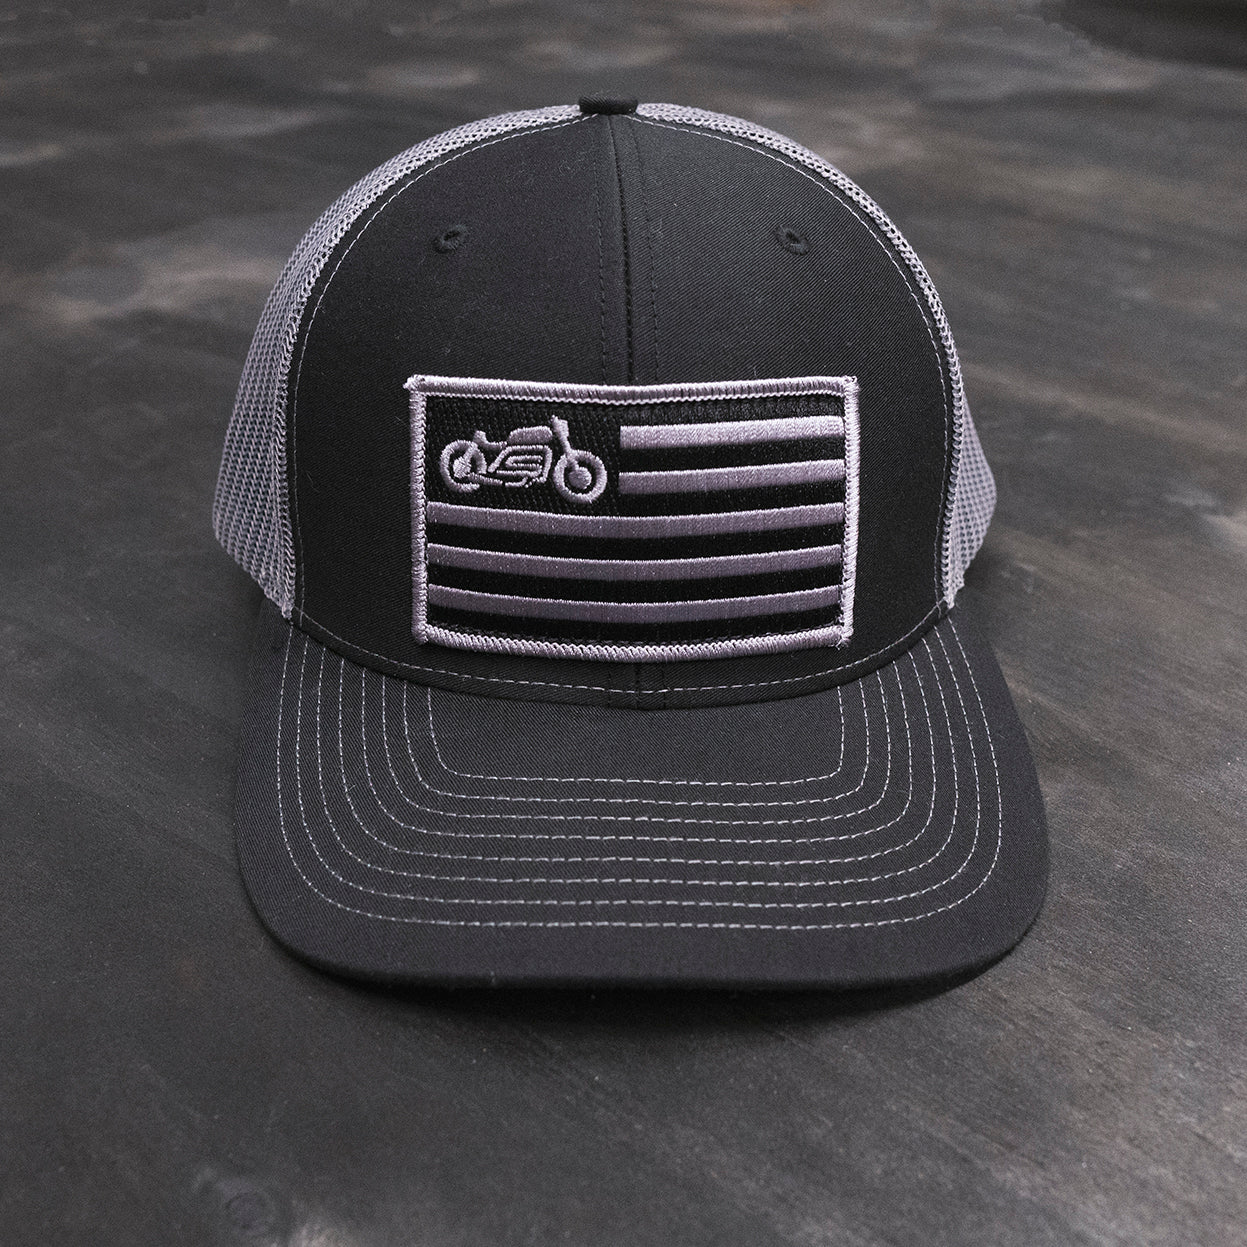 motorcycle & cafe racer flag inspired patch hat